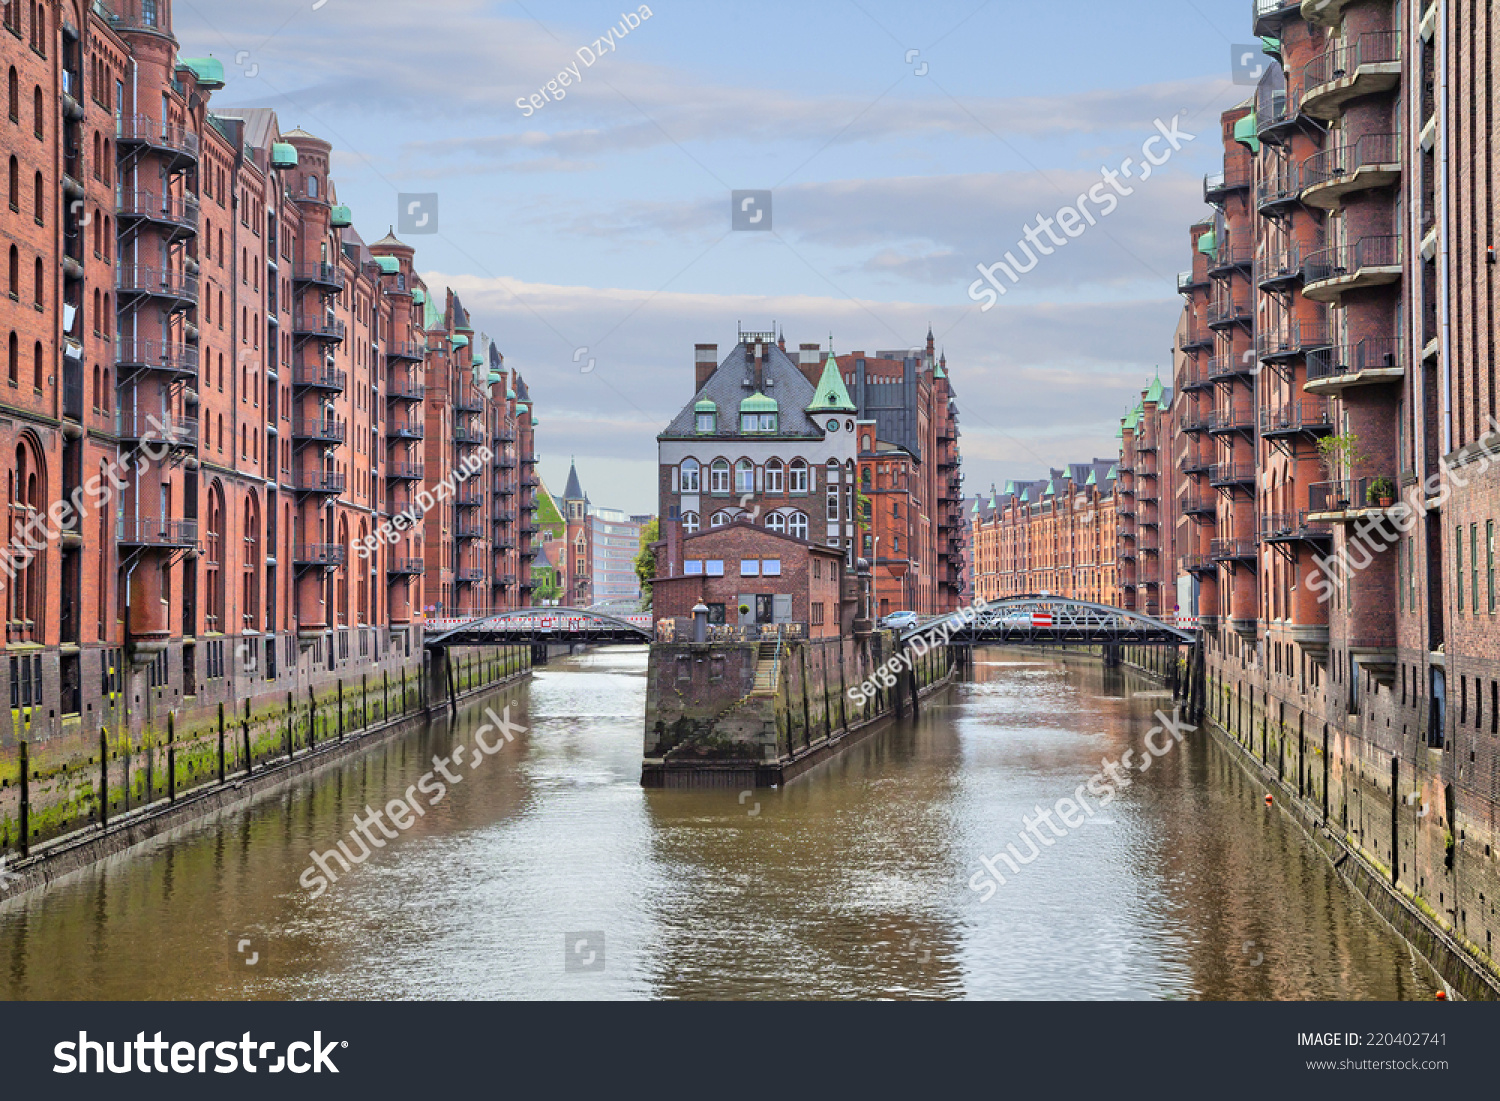 Stock photo hamburg germany riverside new - House And Two Brides In Old Warehouse District Speicherstadt Hamburg Germany